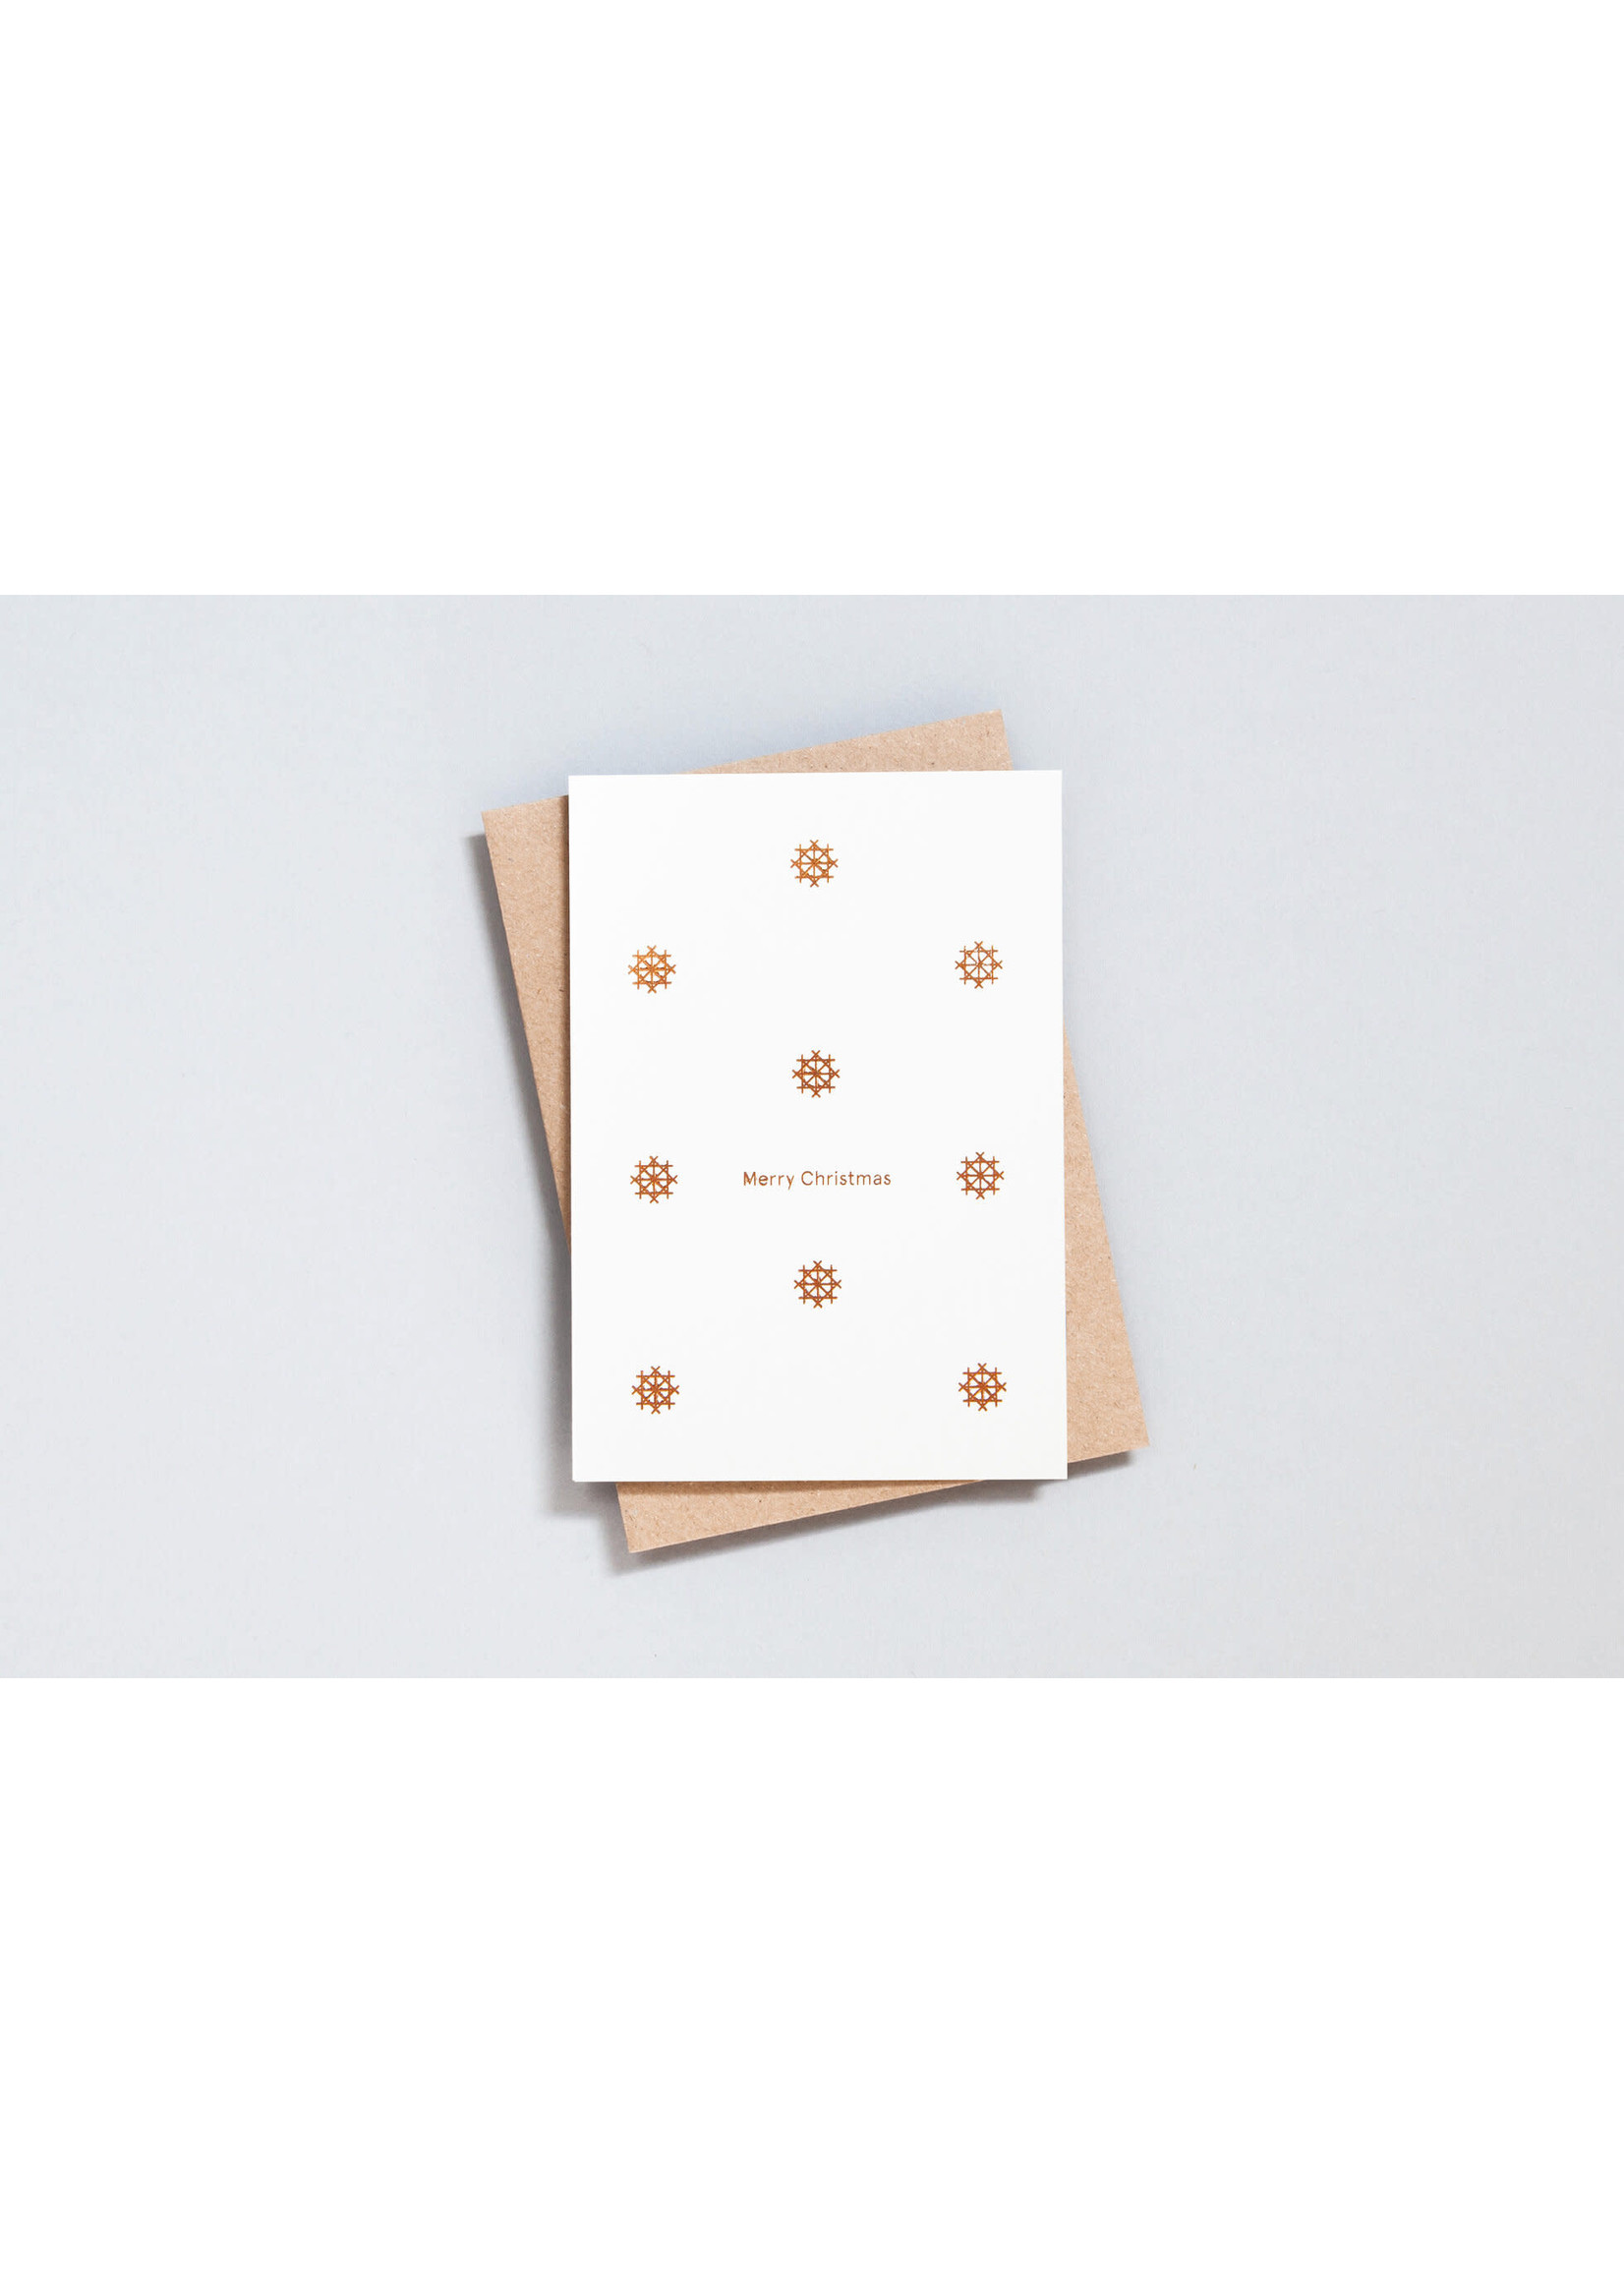 Ola Ola Merry Christmas - Snowflake Motif in Copper on Recycled Natural